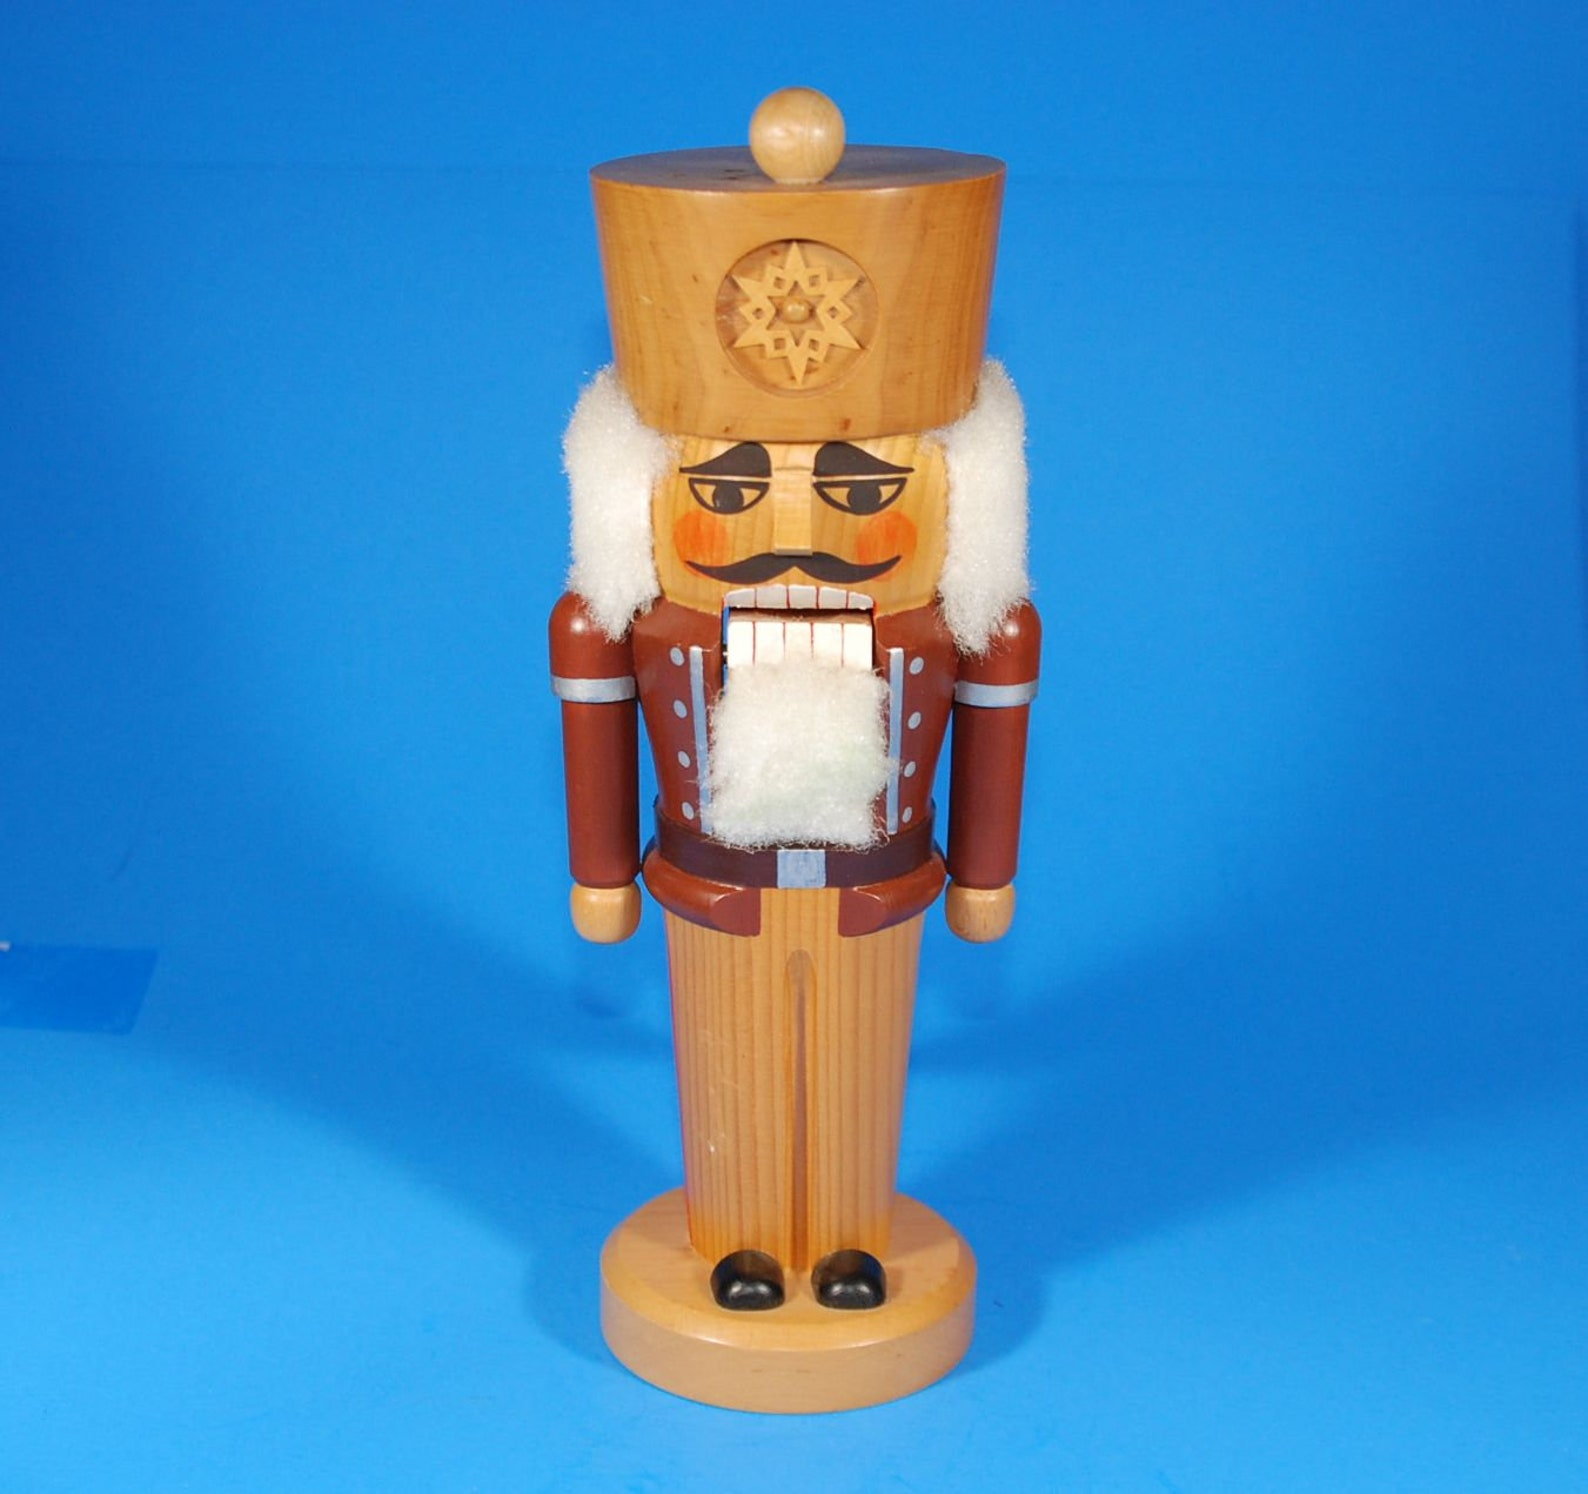 Vintage East German DDR Nutcracker Soldier Erzgebirgische Volkskunst Expertic Decoration